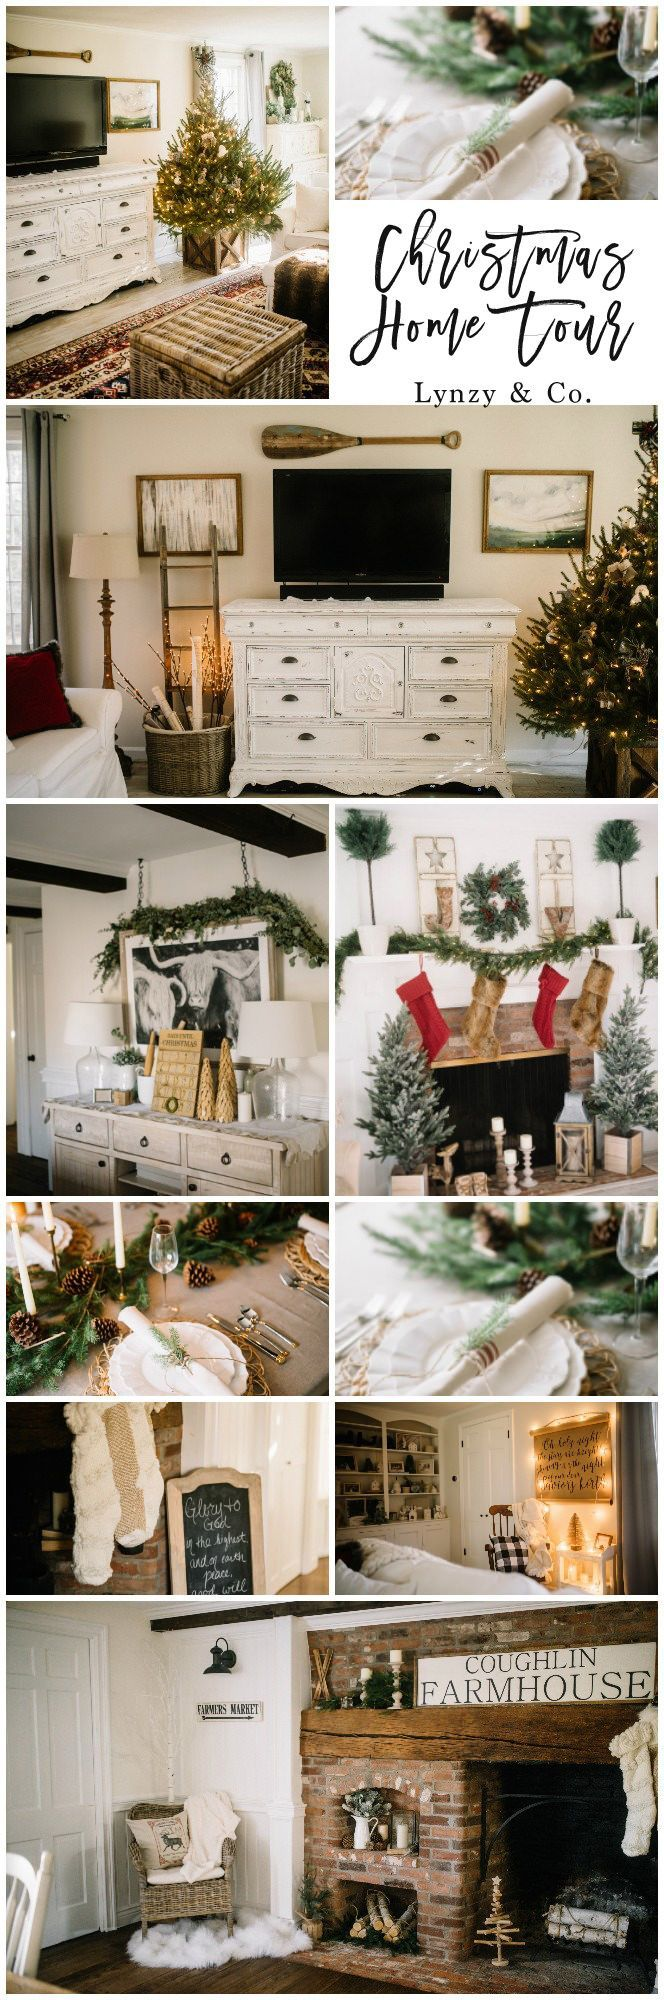 964 best christmas yuletide images on pinterest christmas home tour